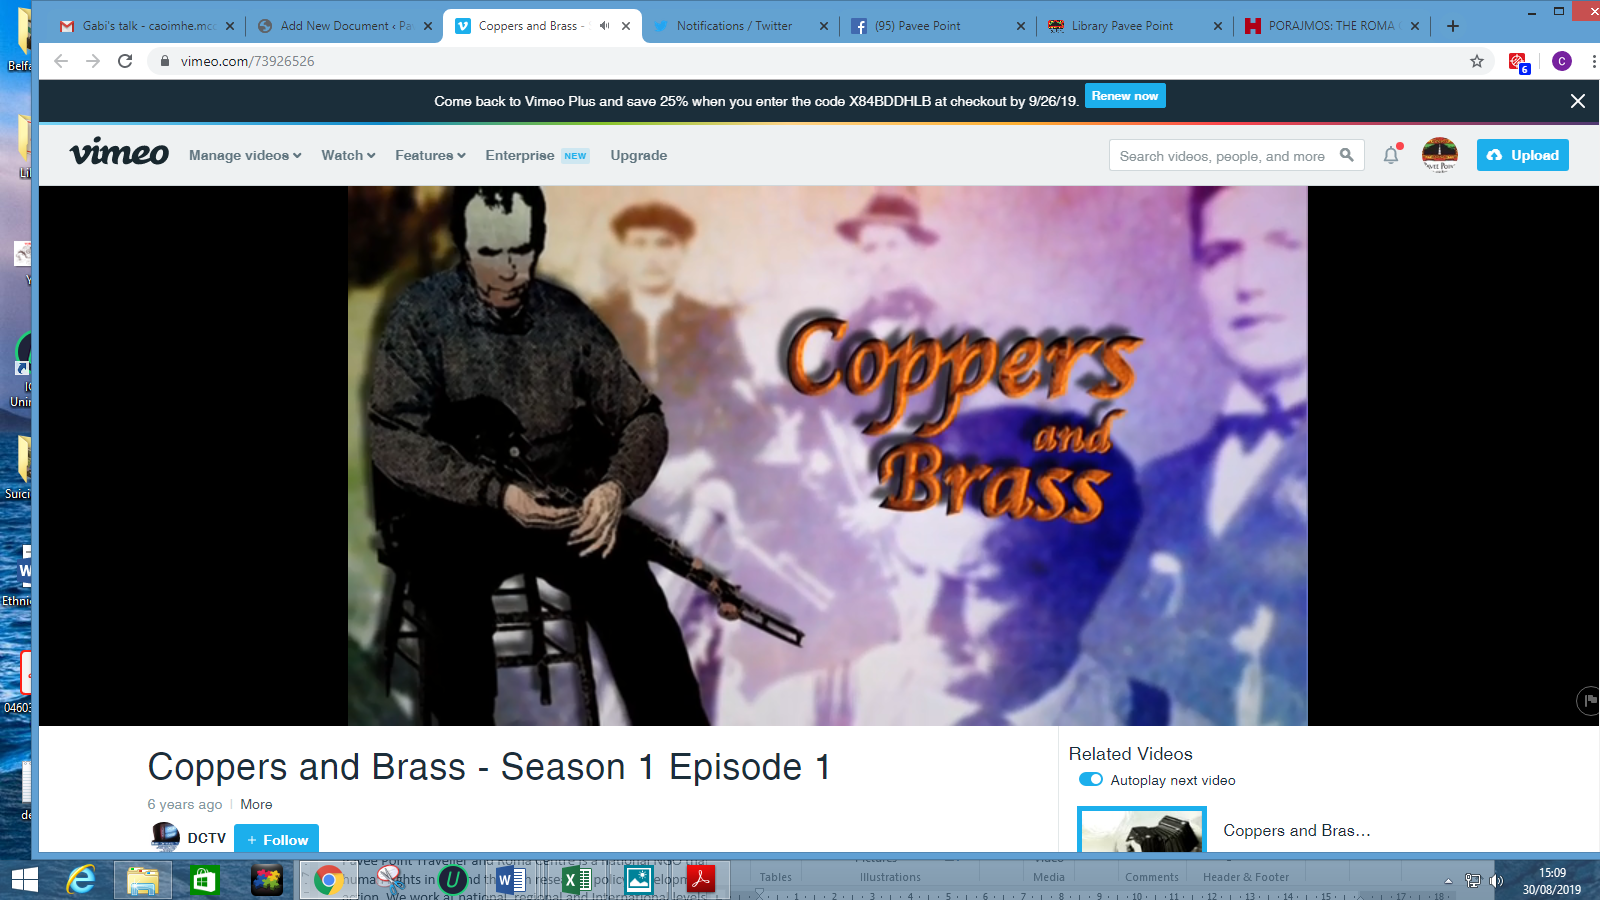 Coppers and Brass 1